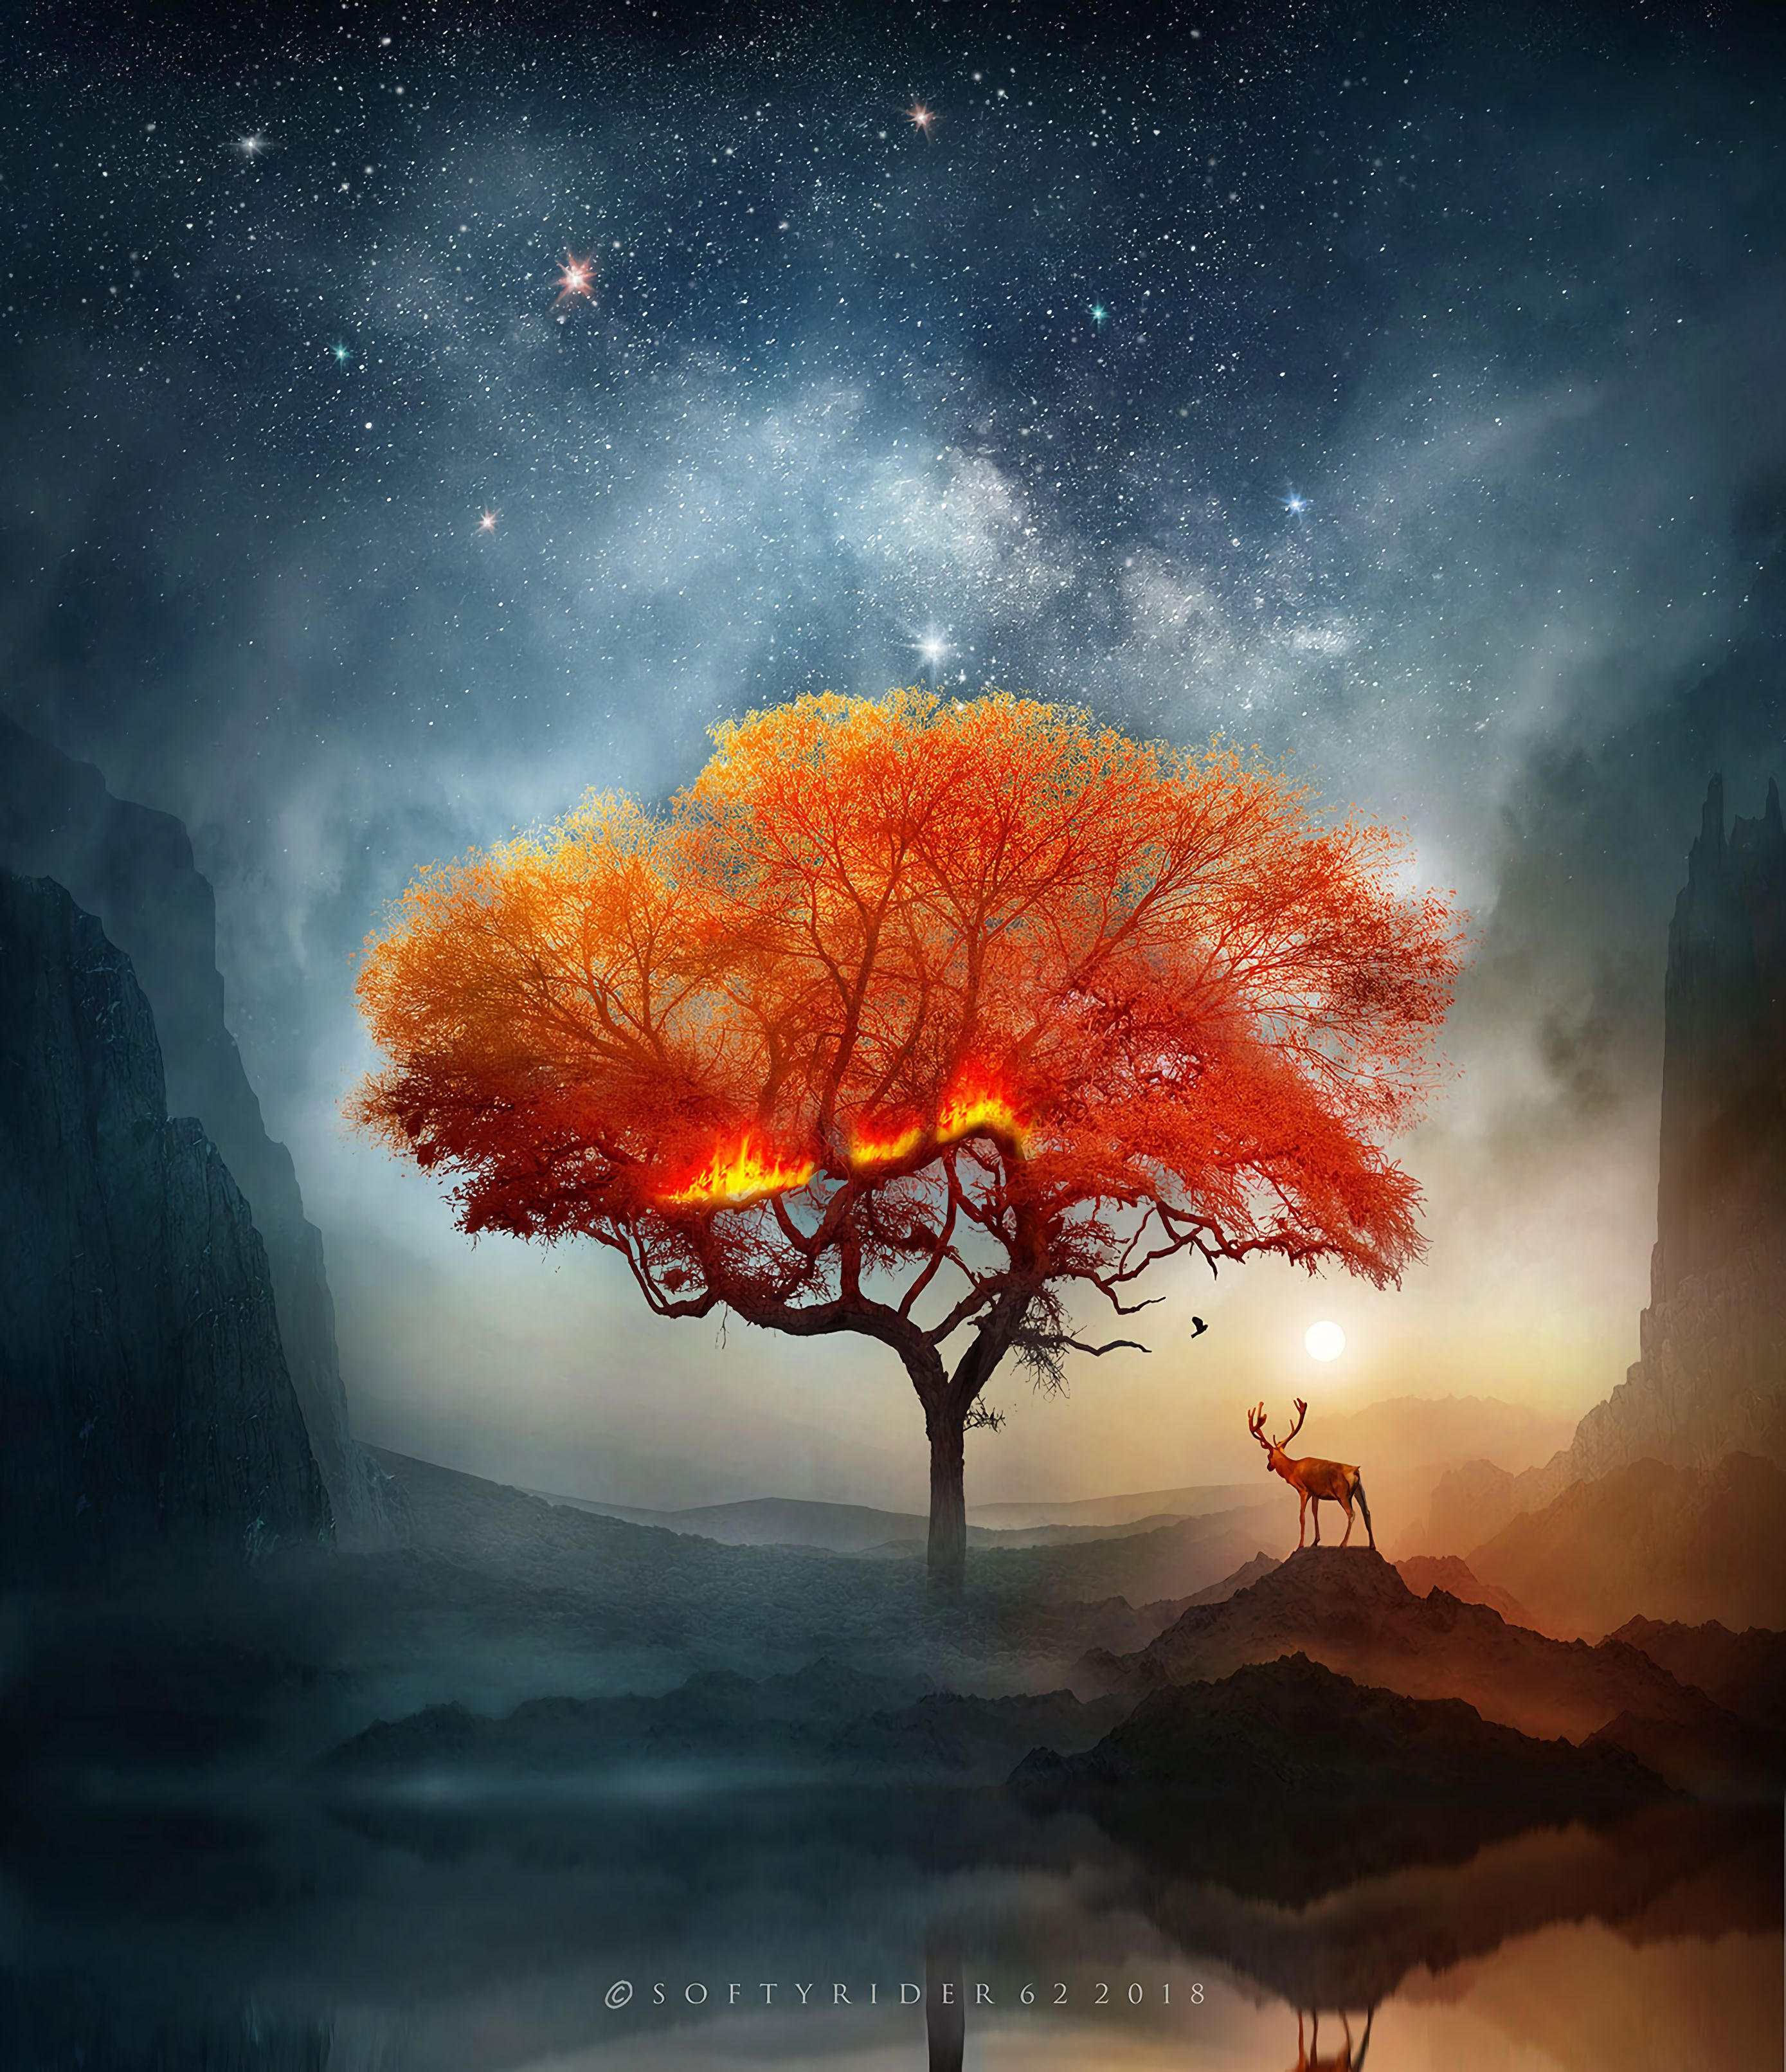 122614 download wallpaper Deer, Wood, Tree, Art, Fire, Fantastic screensavers and pictures for free